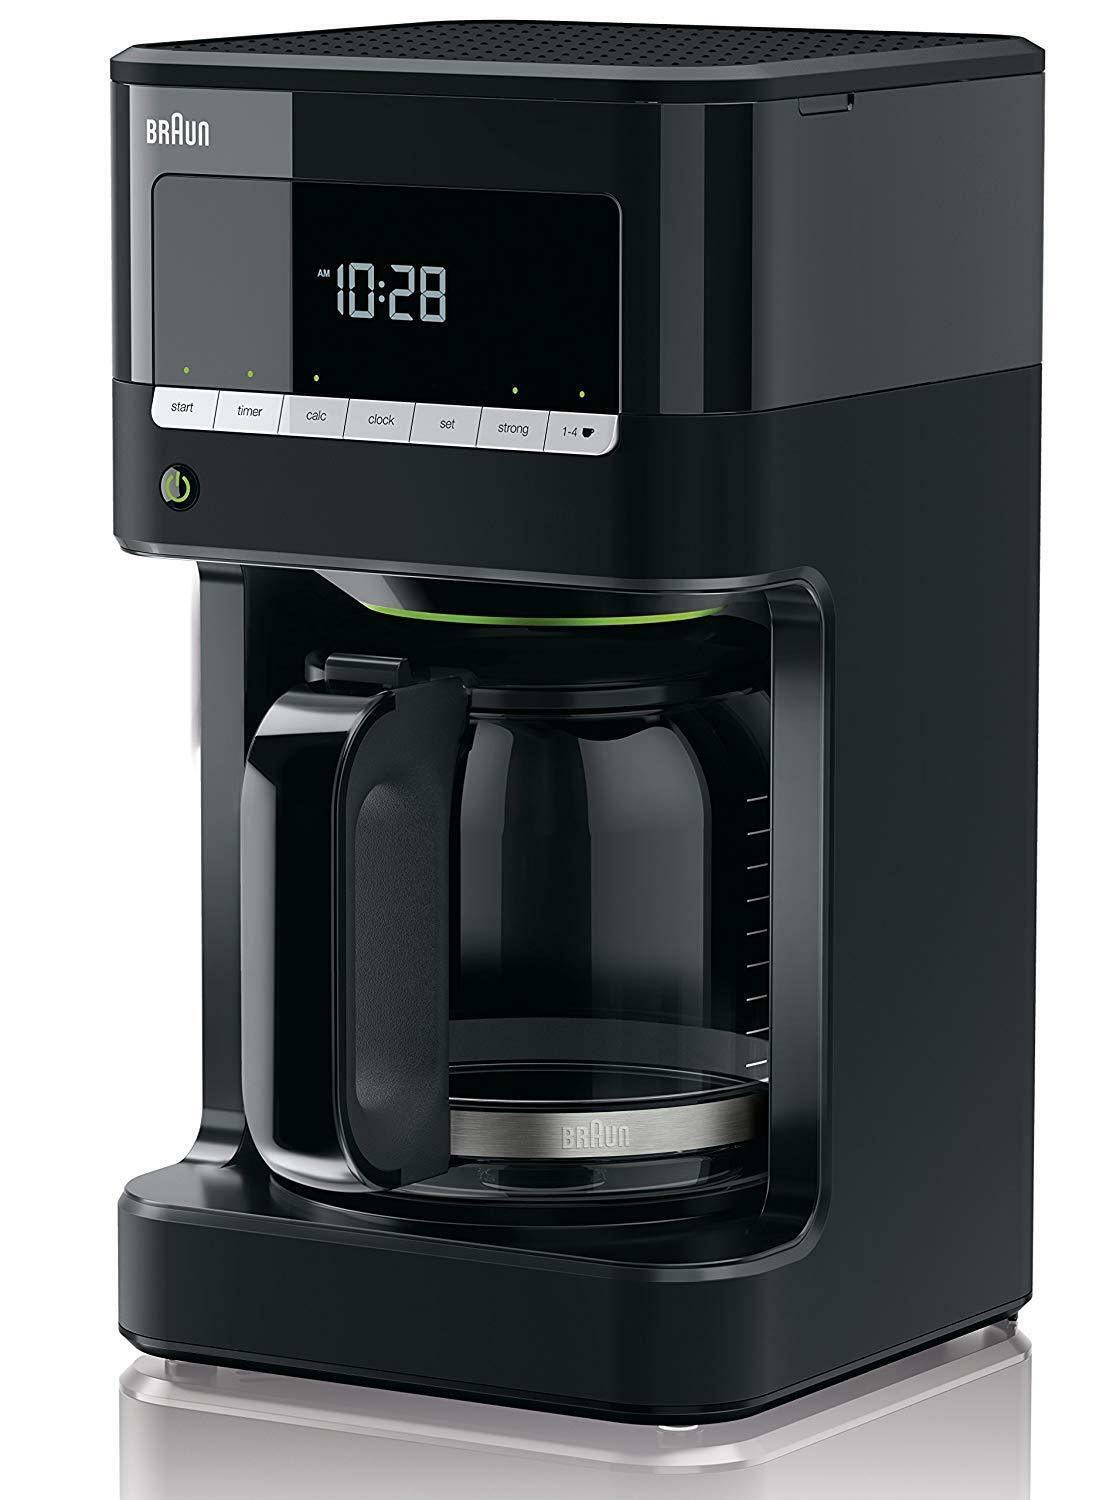 marron 220 Volt PurAroma 7 KF-7020 12-Cups Coffee Maker (NON-USA For Export Only)